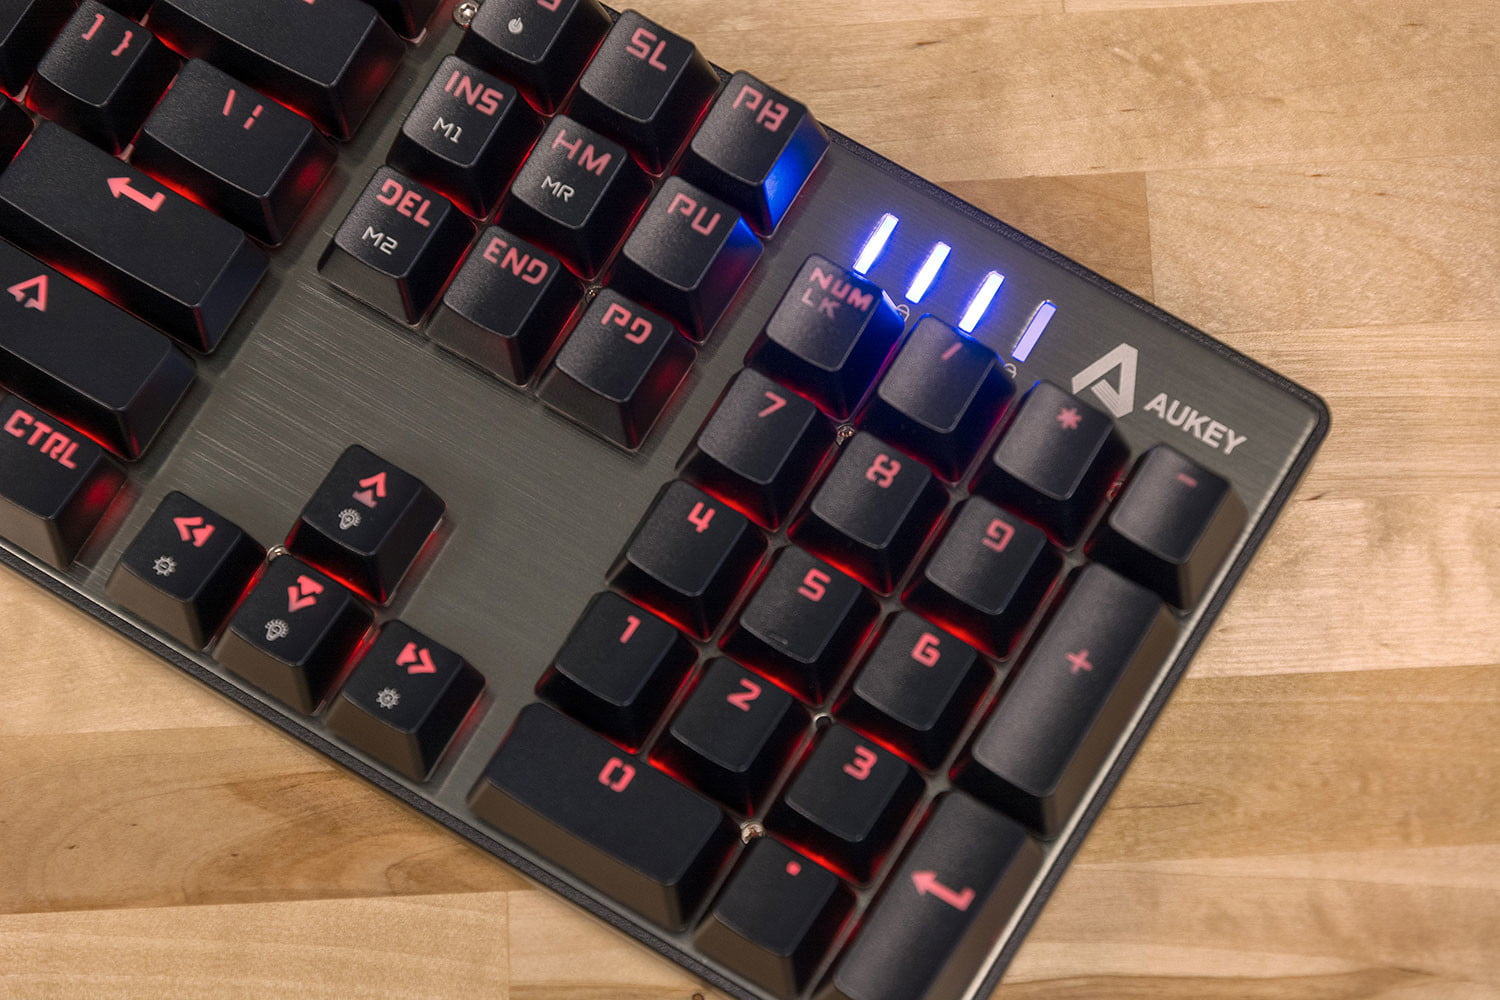 Aukey's KM-G3 Keyboard Targets PC Gamers With Tight Wallets